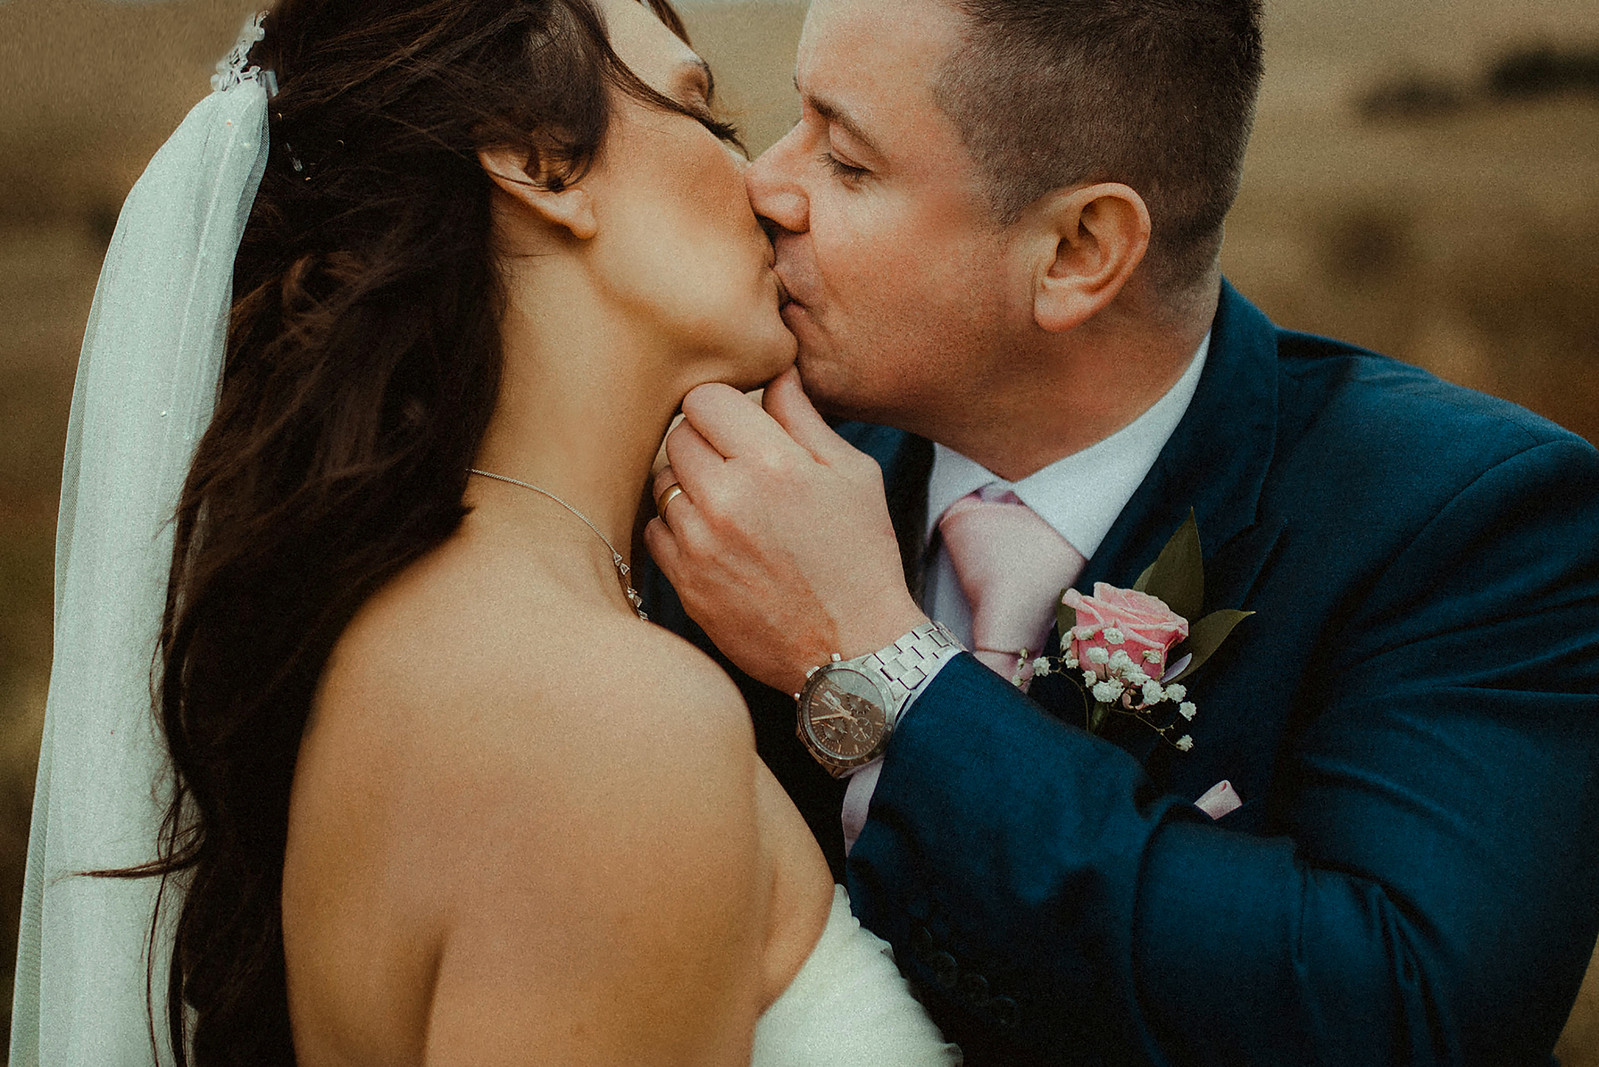 Close up Wedding Photo of Bride and Groom Kissing